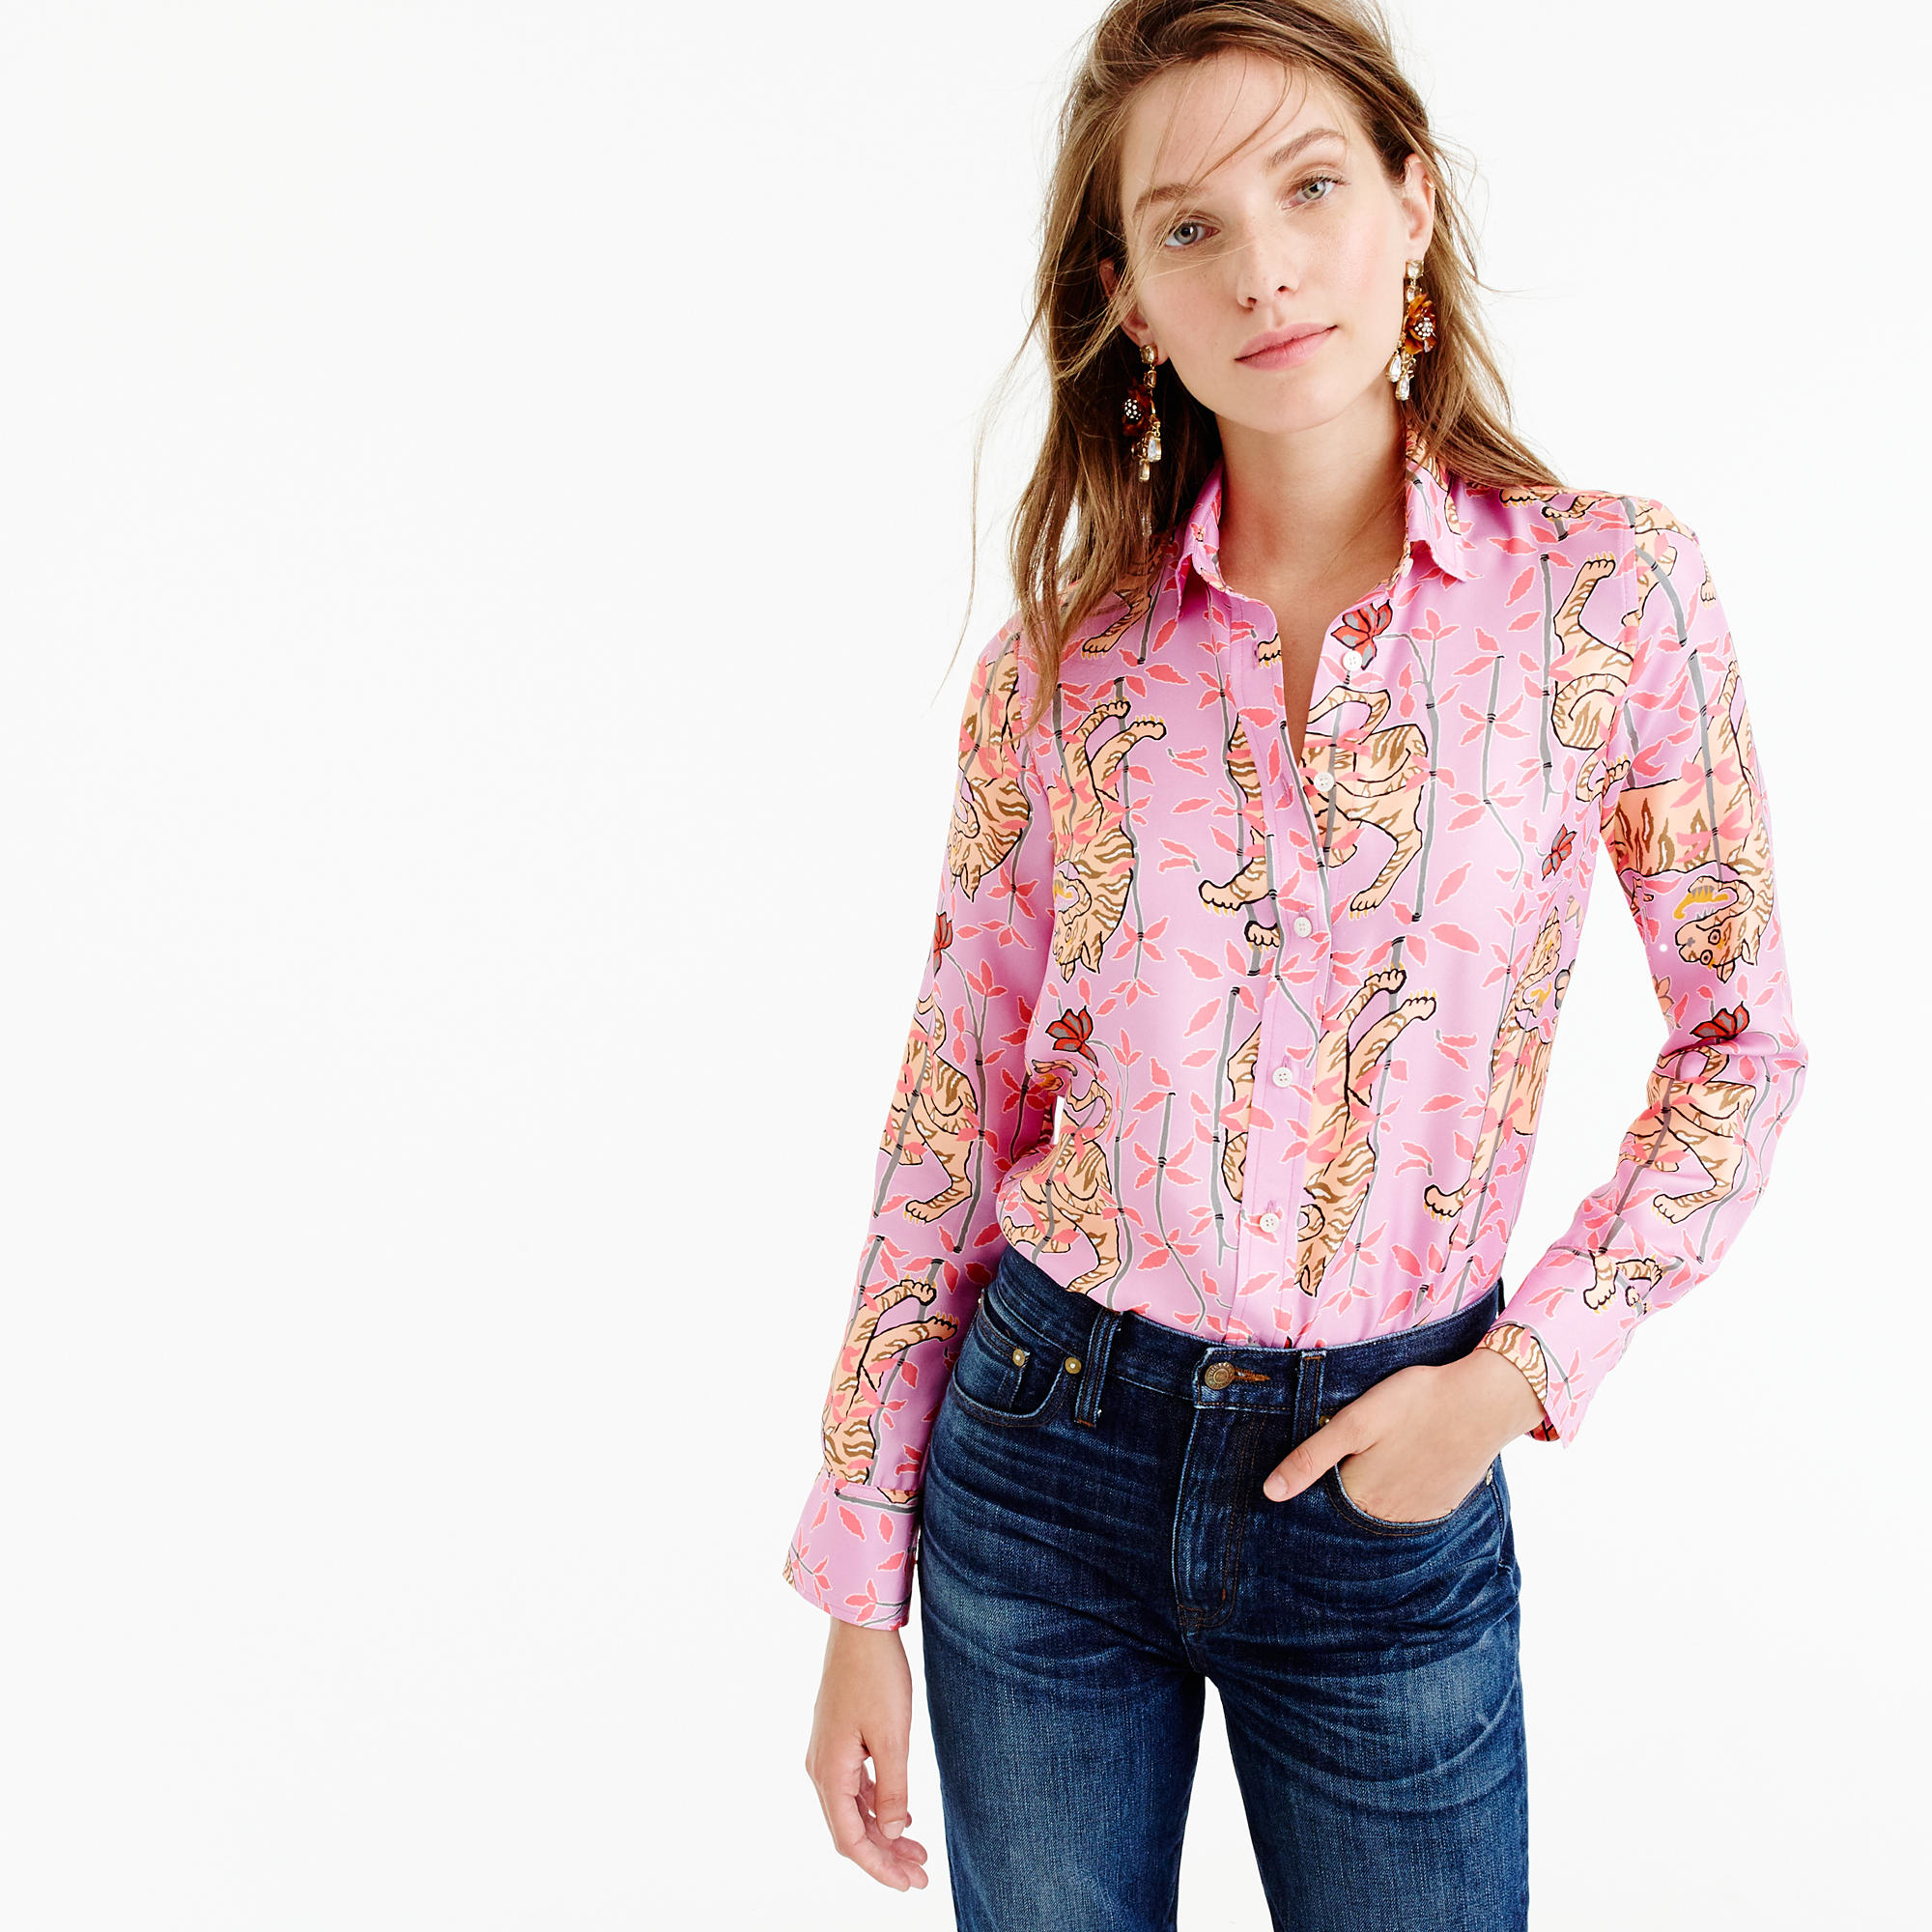 706d9d3c93eb47 Lyst - J.Crew Collection Drake s Perfect Shirt In Pink Bengal Tiger